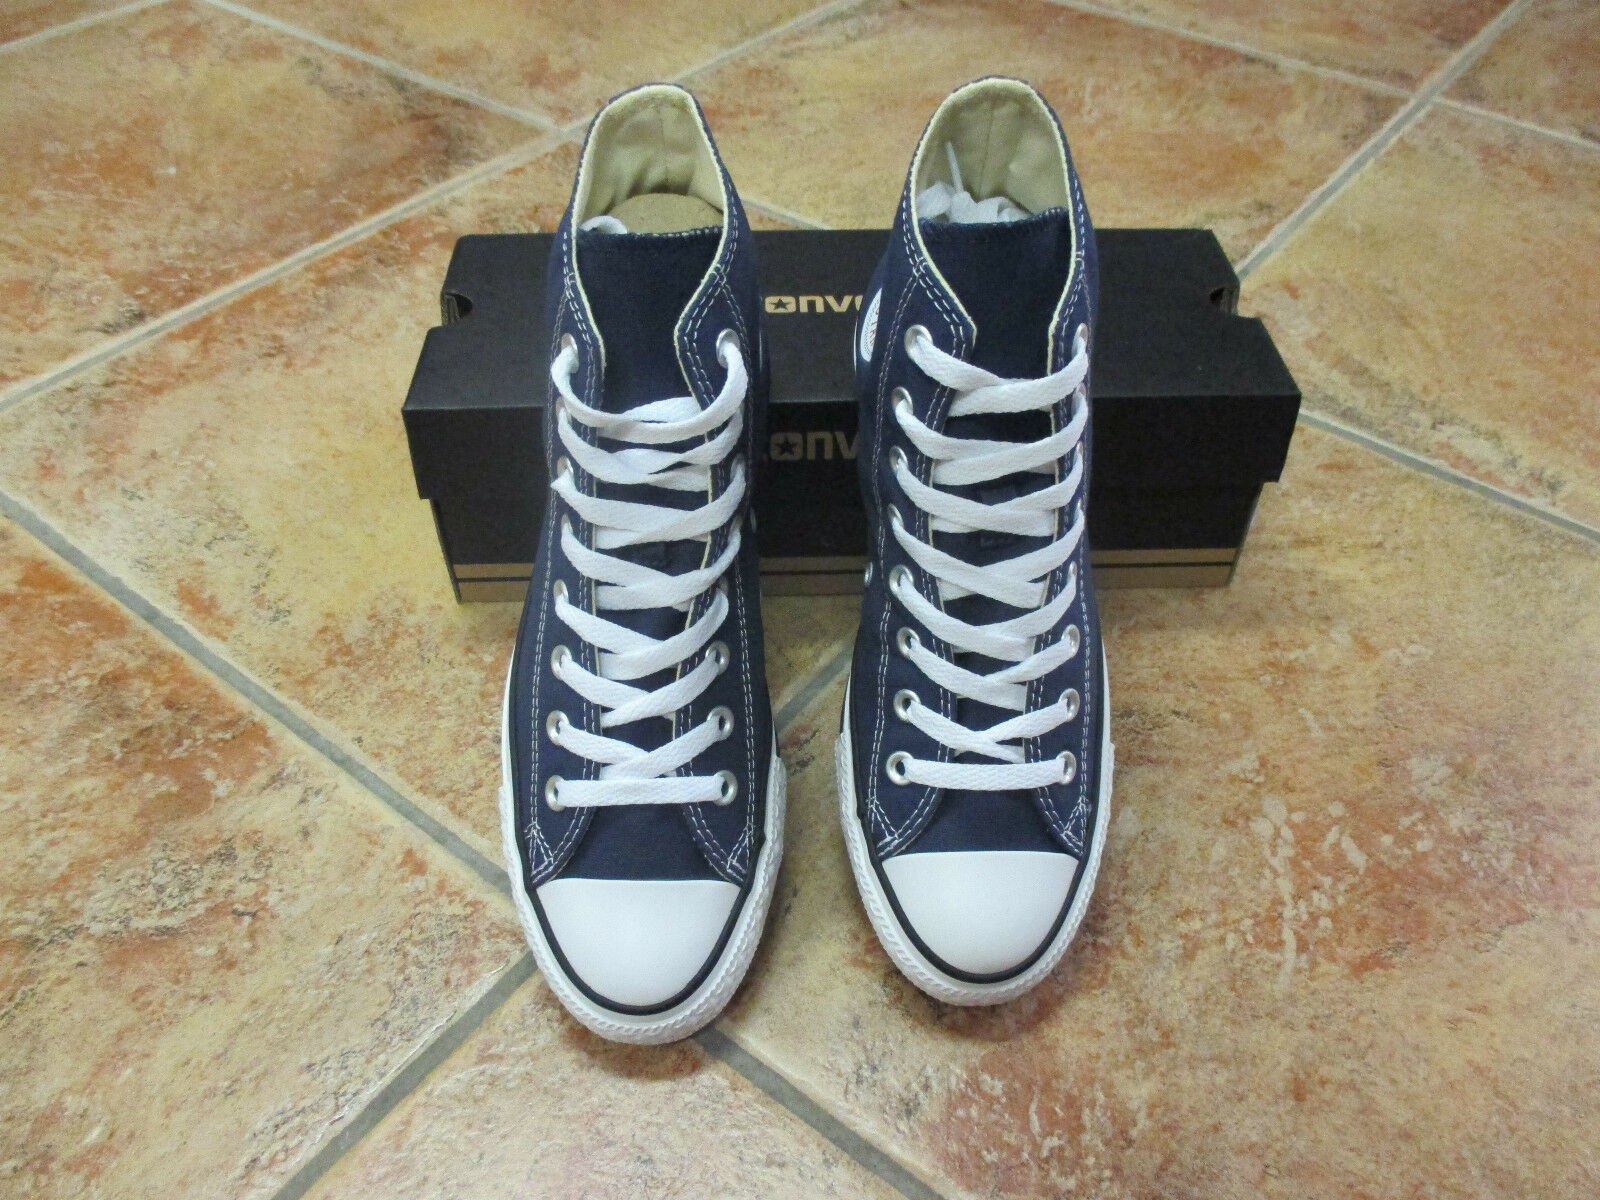 Converse Chucks All Star HI Gr.38 blau navy M9622 NEU Top